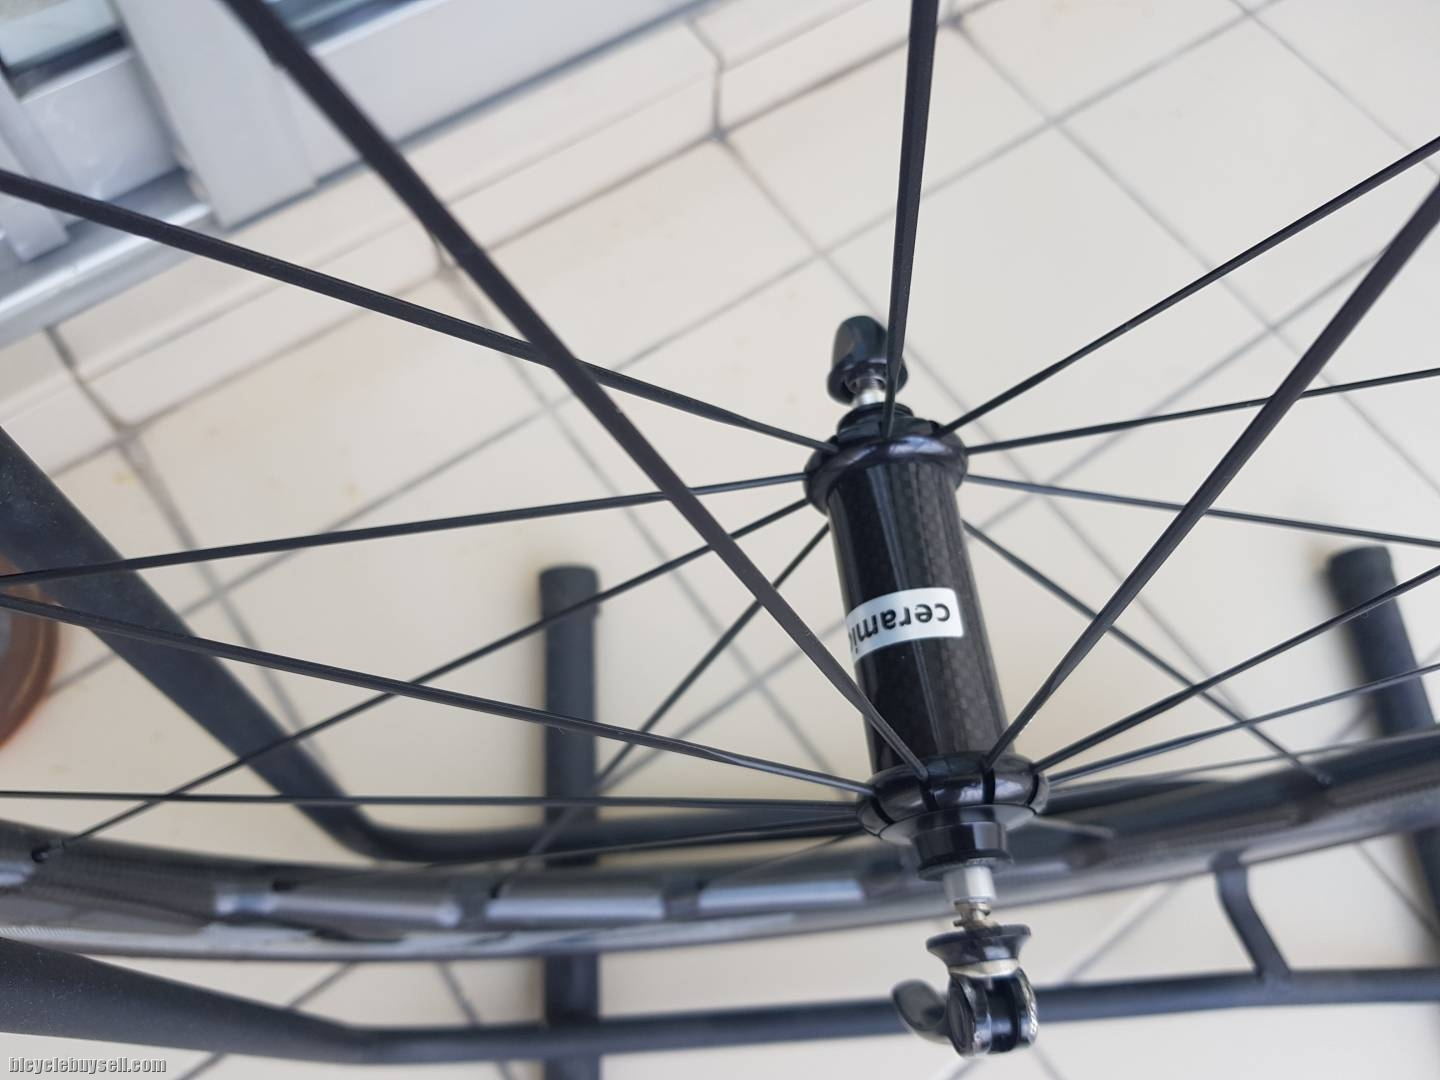 Zipp 454 NSW wheelset (OEM) come with ceramic bering and carbon hub